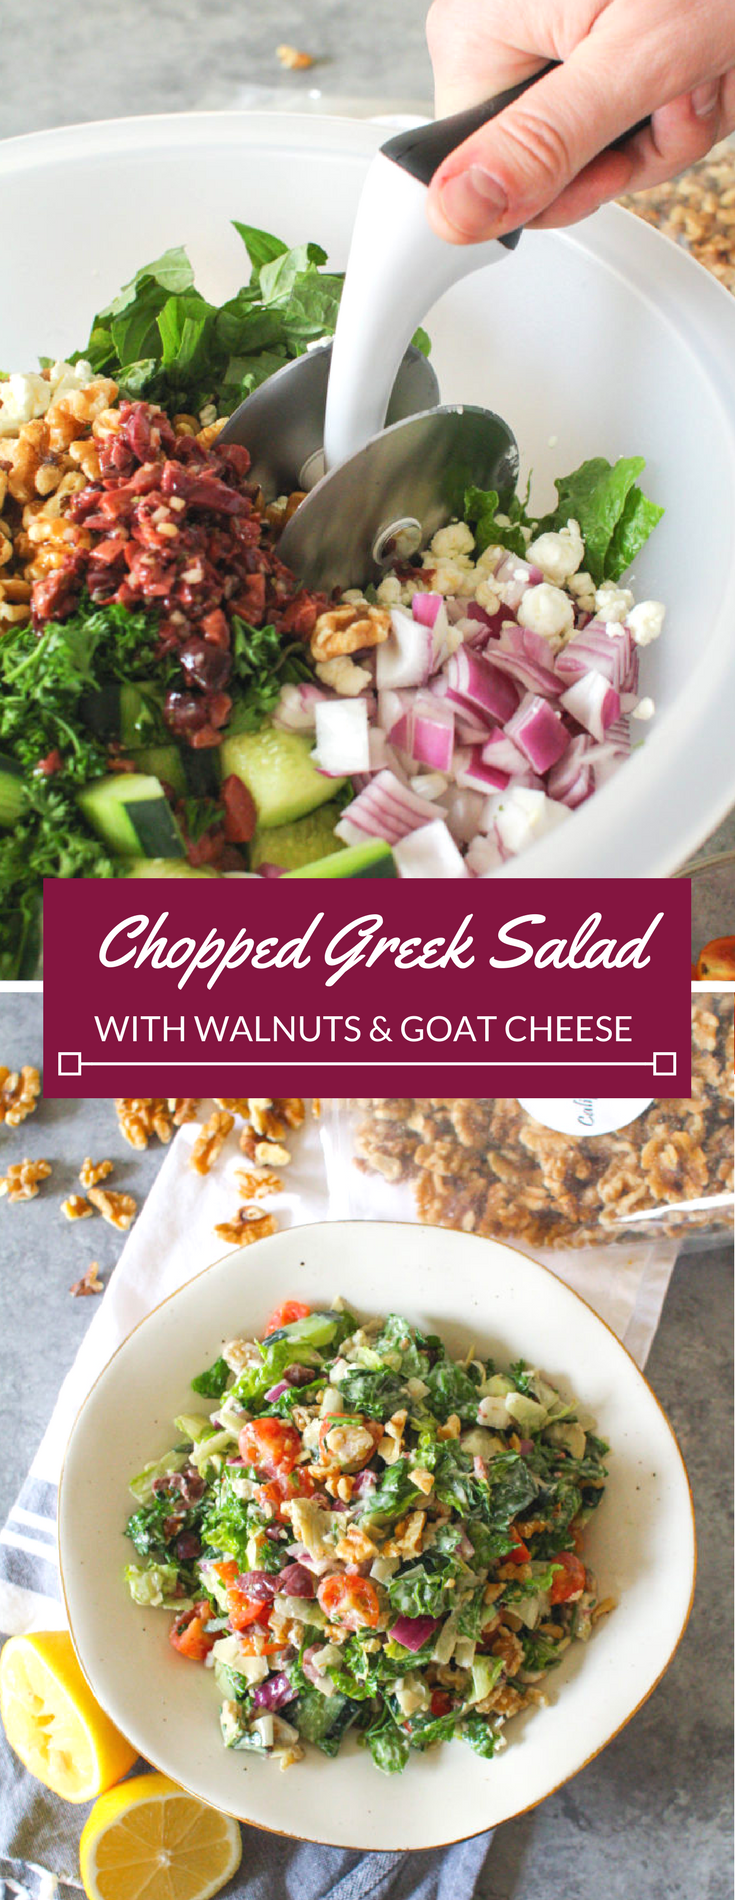 This Chopped Greek Salad is a meal in itself – crunchy veggies combined with savory goat cheese and heart-healthy walnuts, tossed with an olive oil dressing and plenty of fresh herbs and salty Kalamata olives.